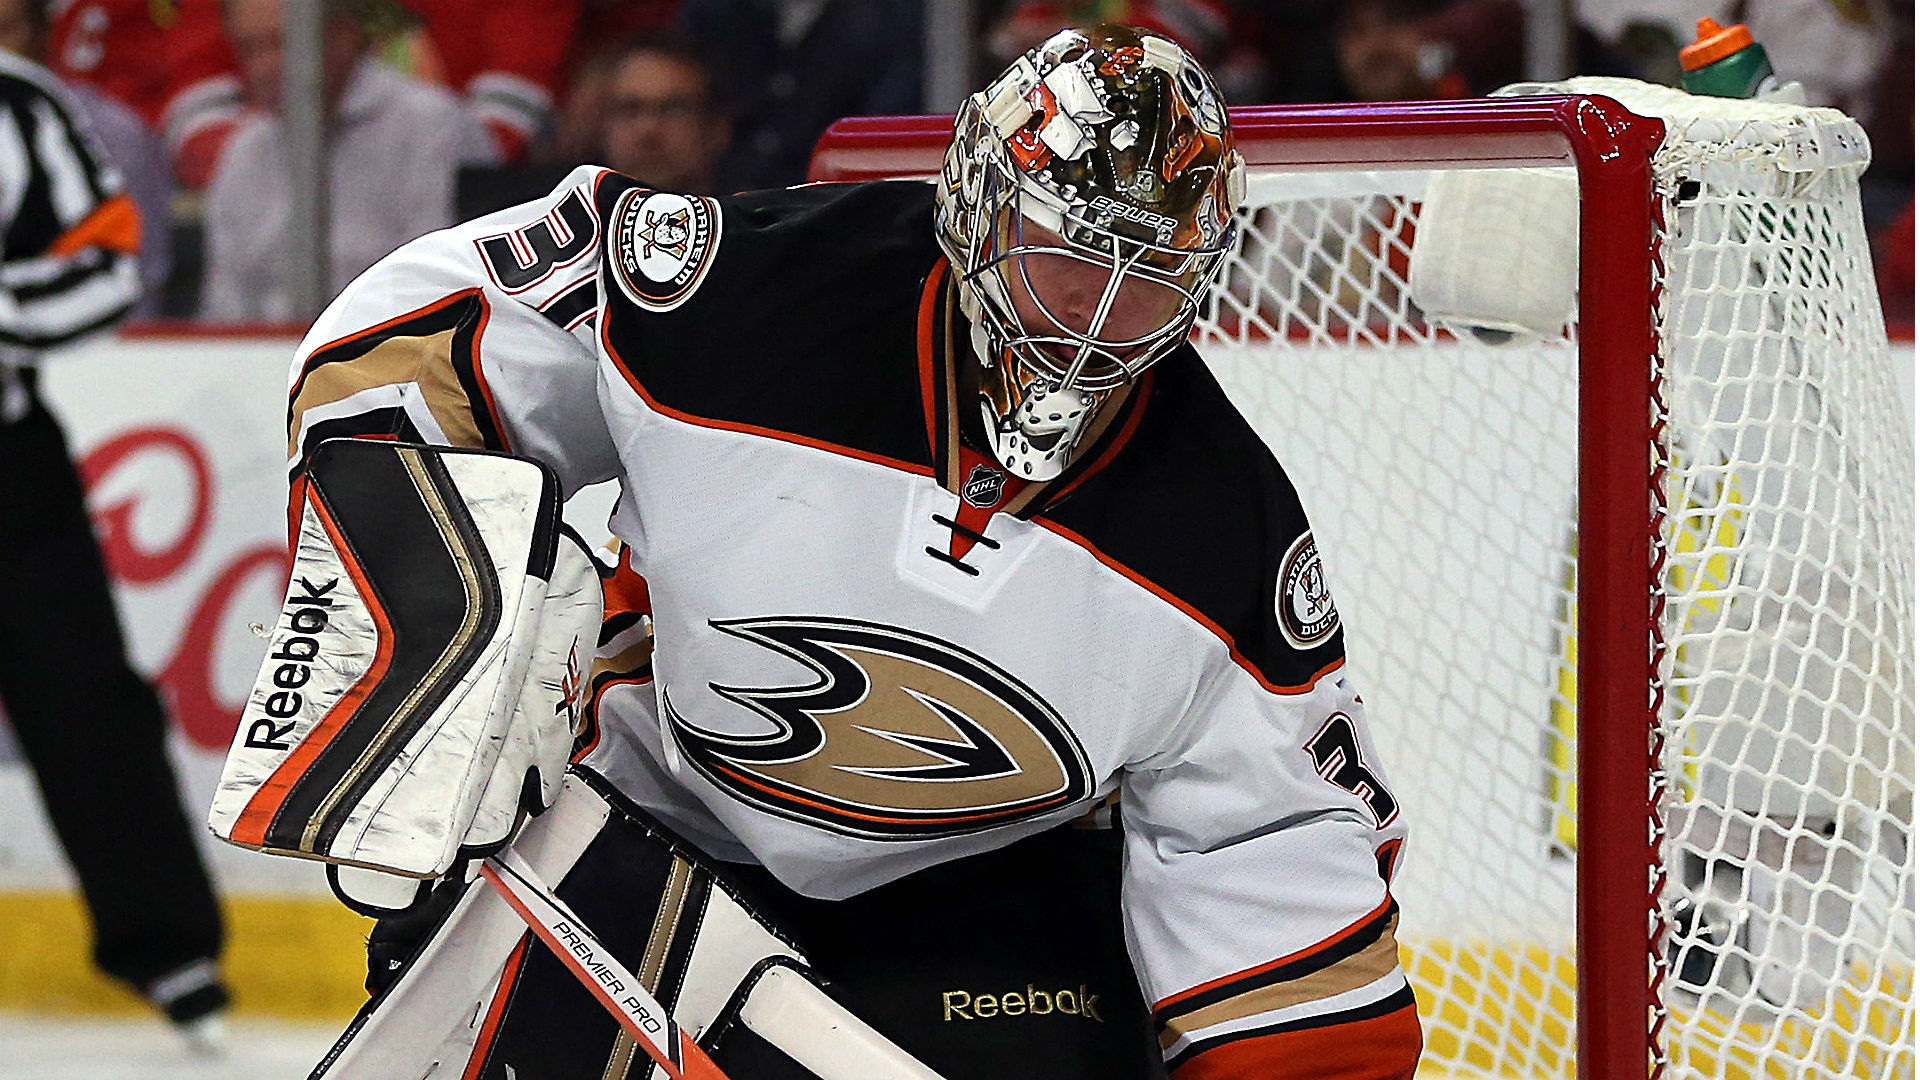 Blackhawks vs. Ducks Game 5 odds and betting analysis — Anaheim emerges as series favorite